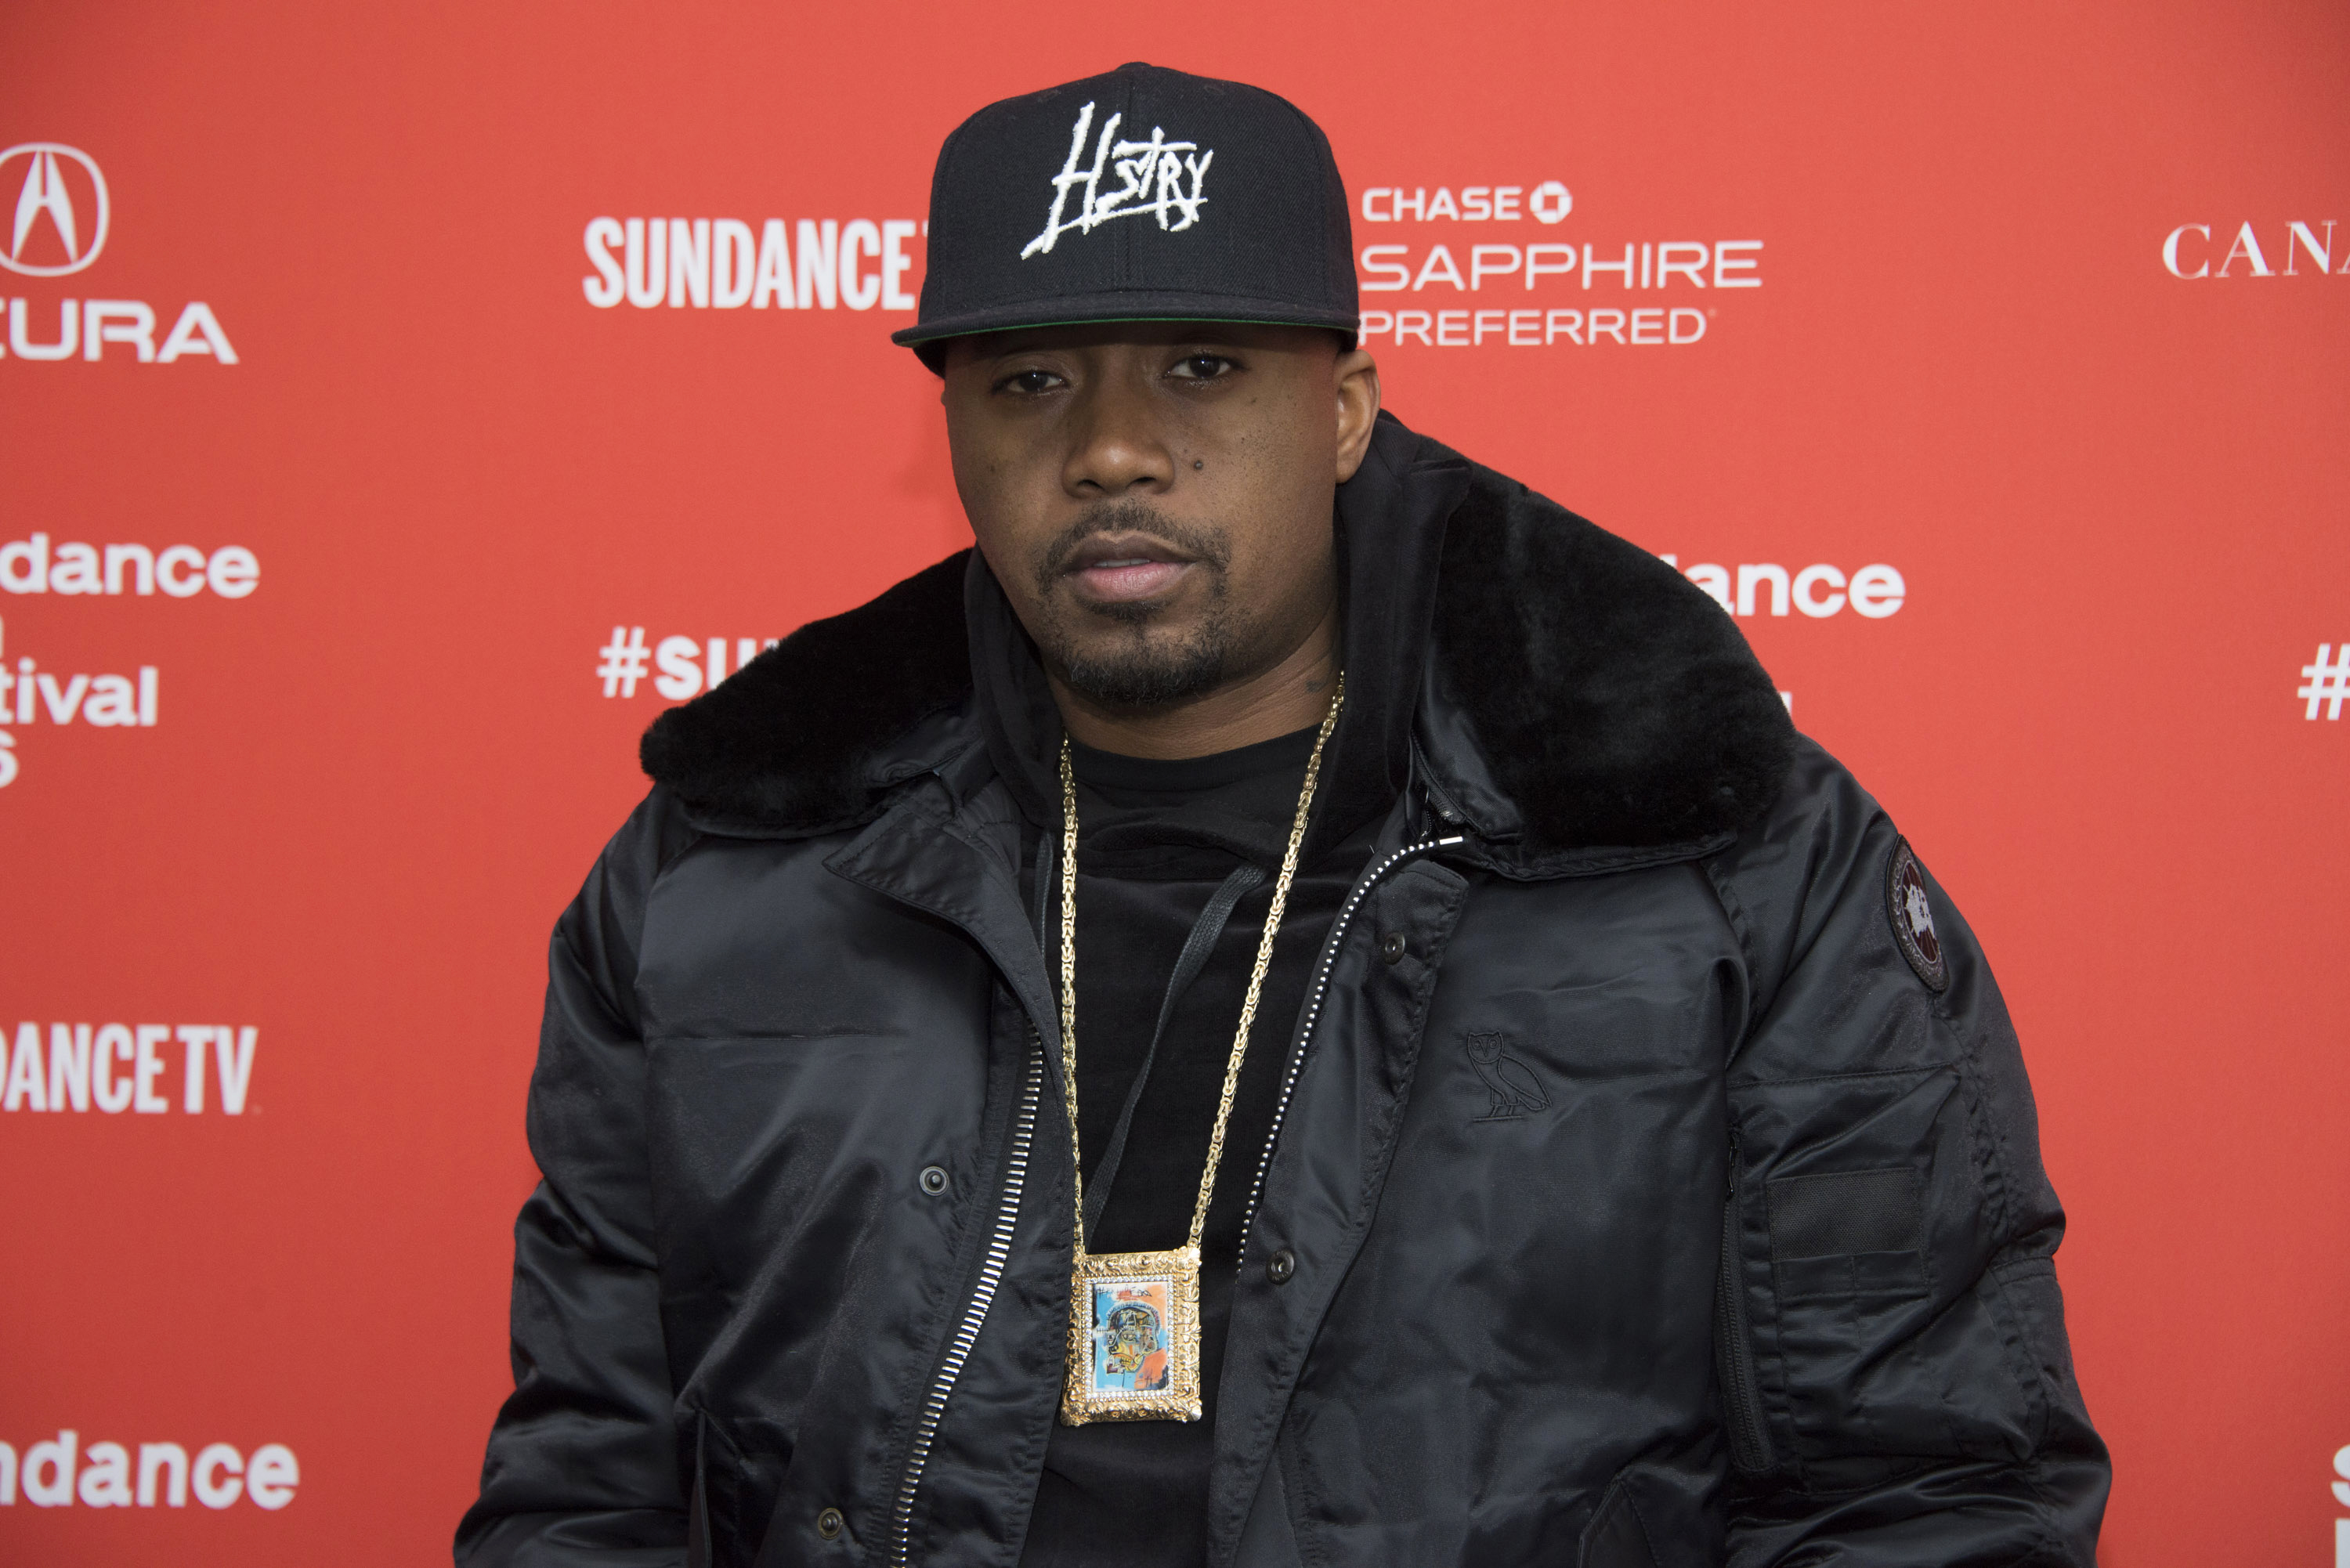 """Nas at the premiere of """"The Land"""" during the 2016 Sundance Film Festival on Tuesday, Jan. 26, 2016, in Park City, Utah. (Photo by Arthur Mola/Invision/AP)"""